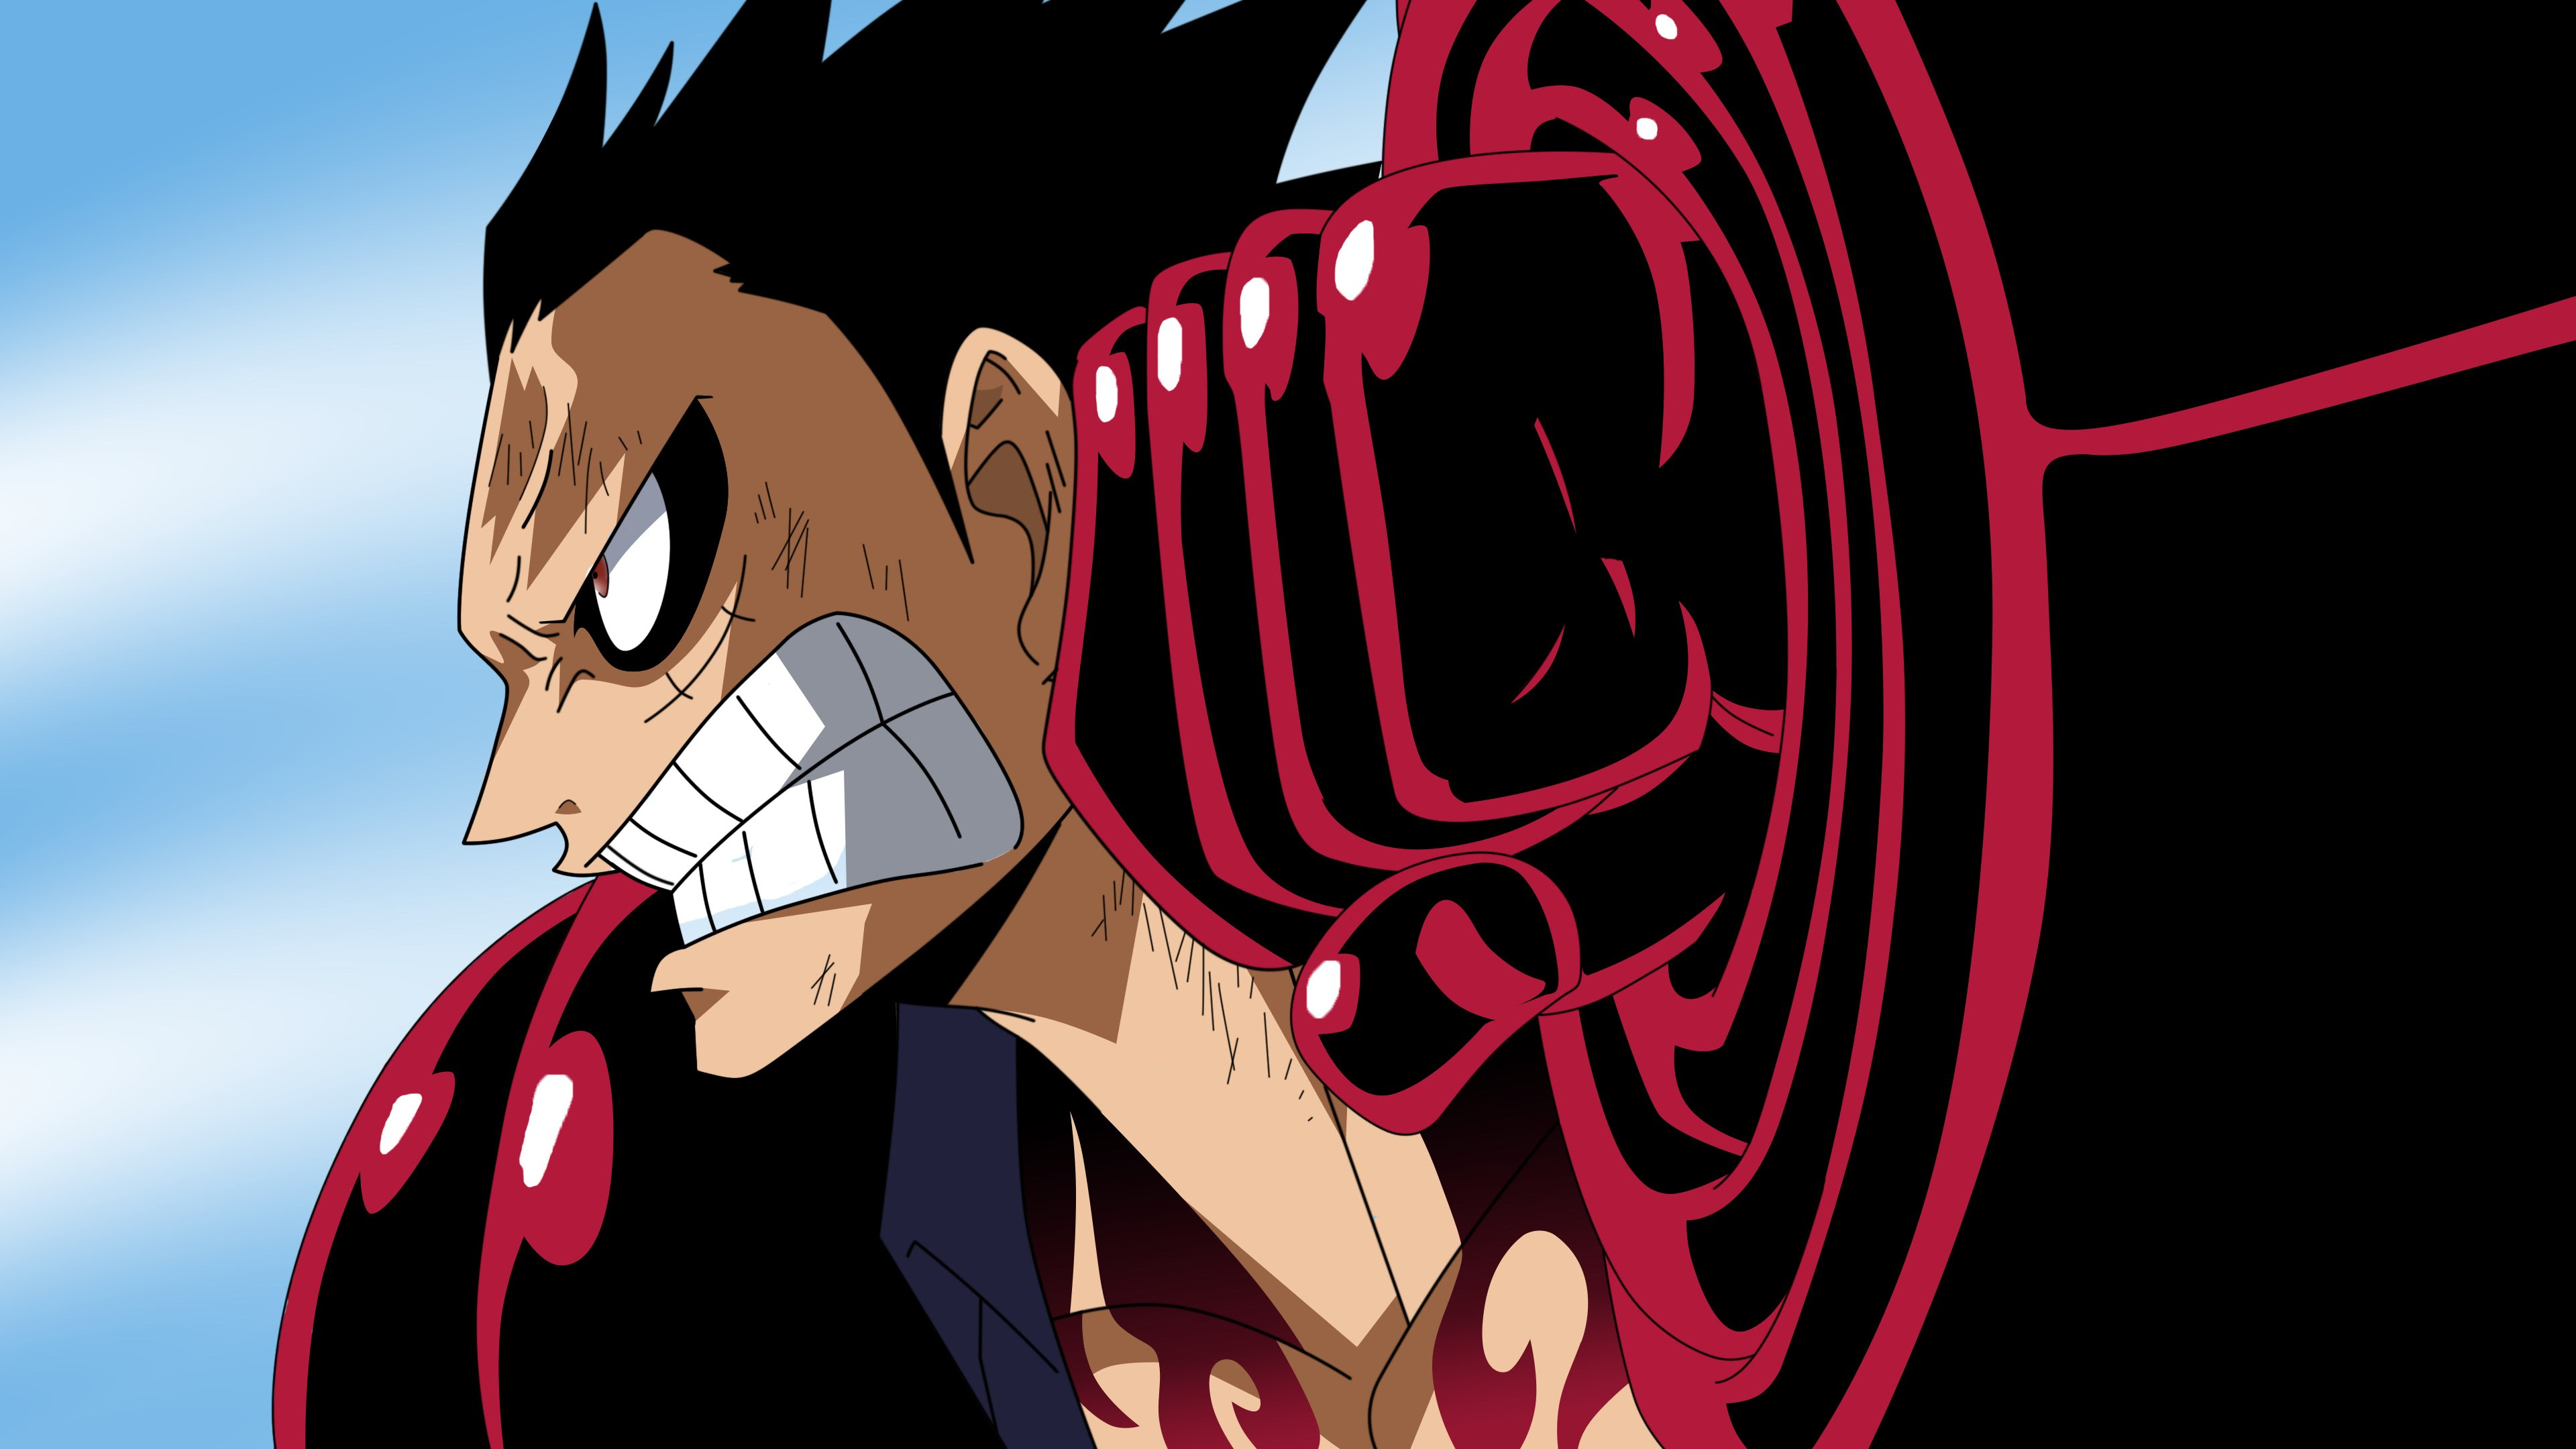 Anime Wallpaper Hd One Piece 4k Wallpaper For Phone